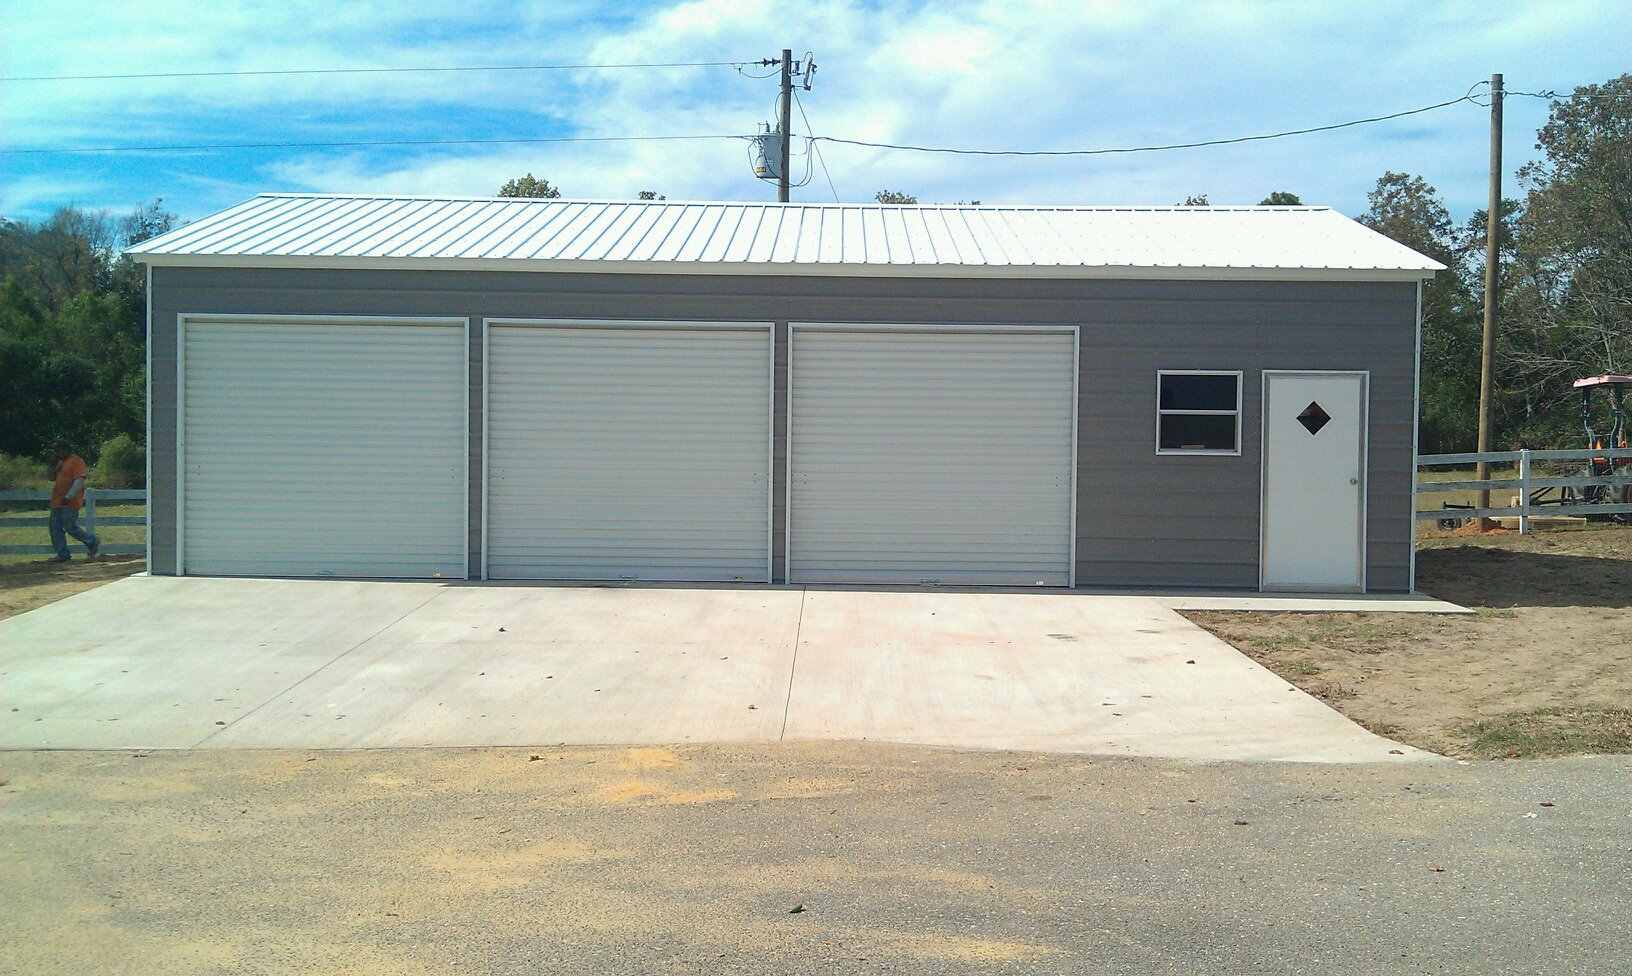 North carolina nc metal garages barns sheds and buildings for Garage building kits canada